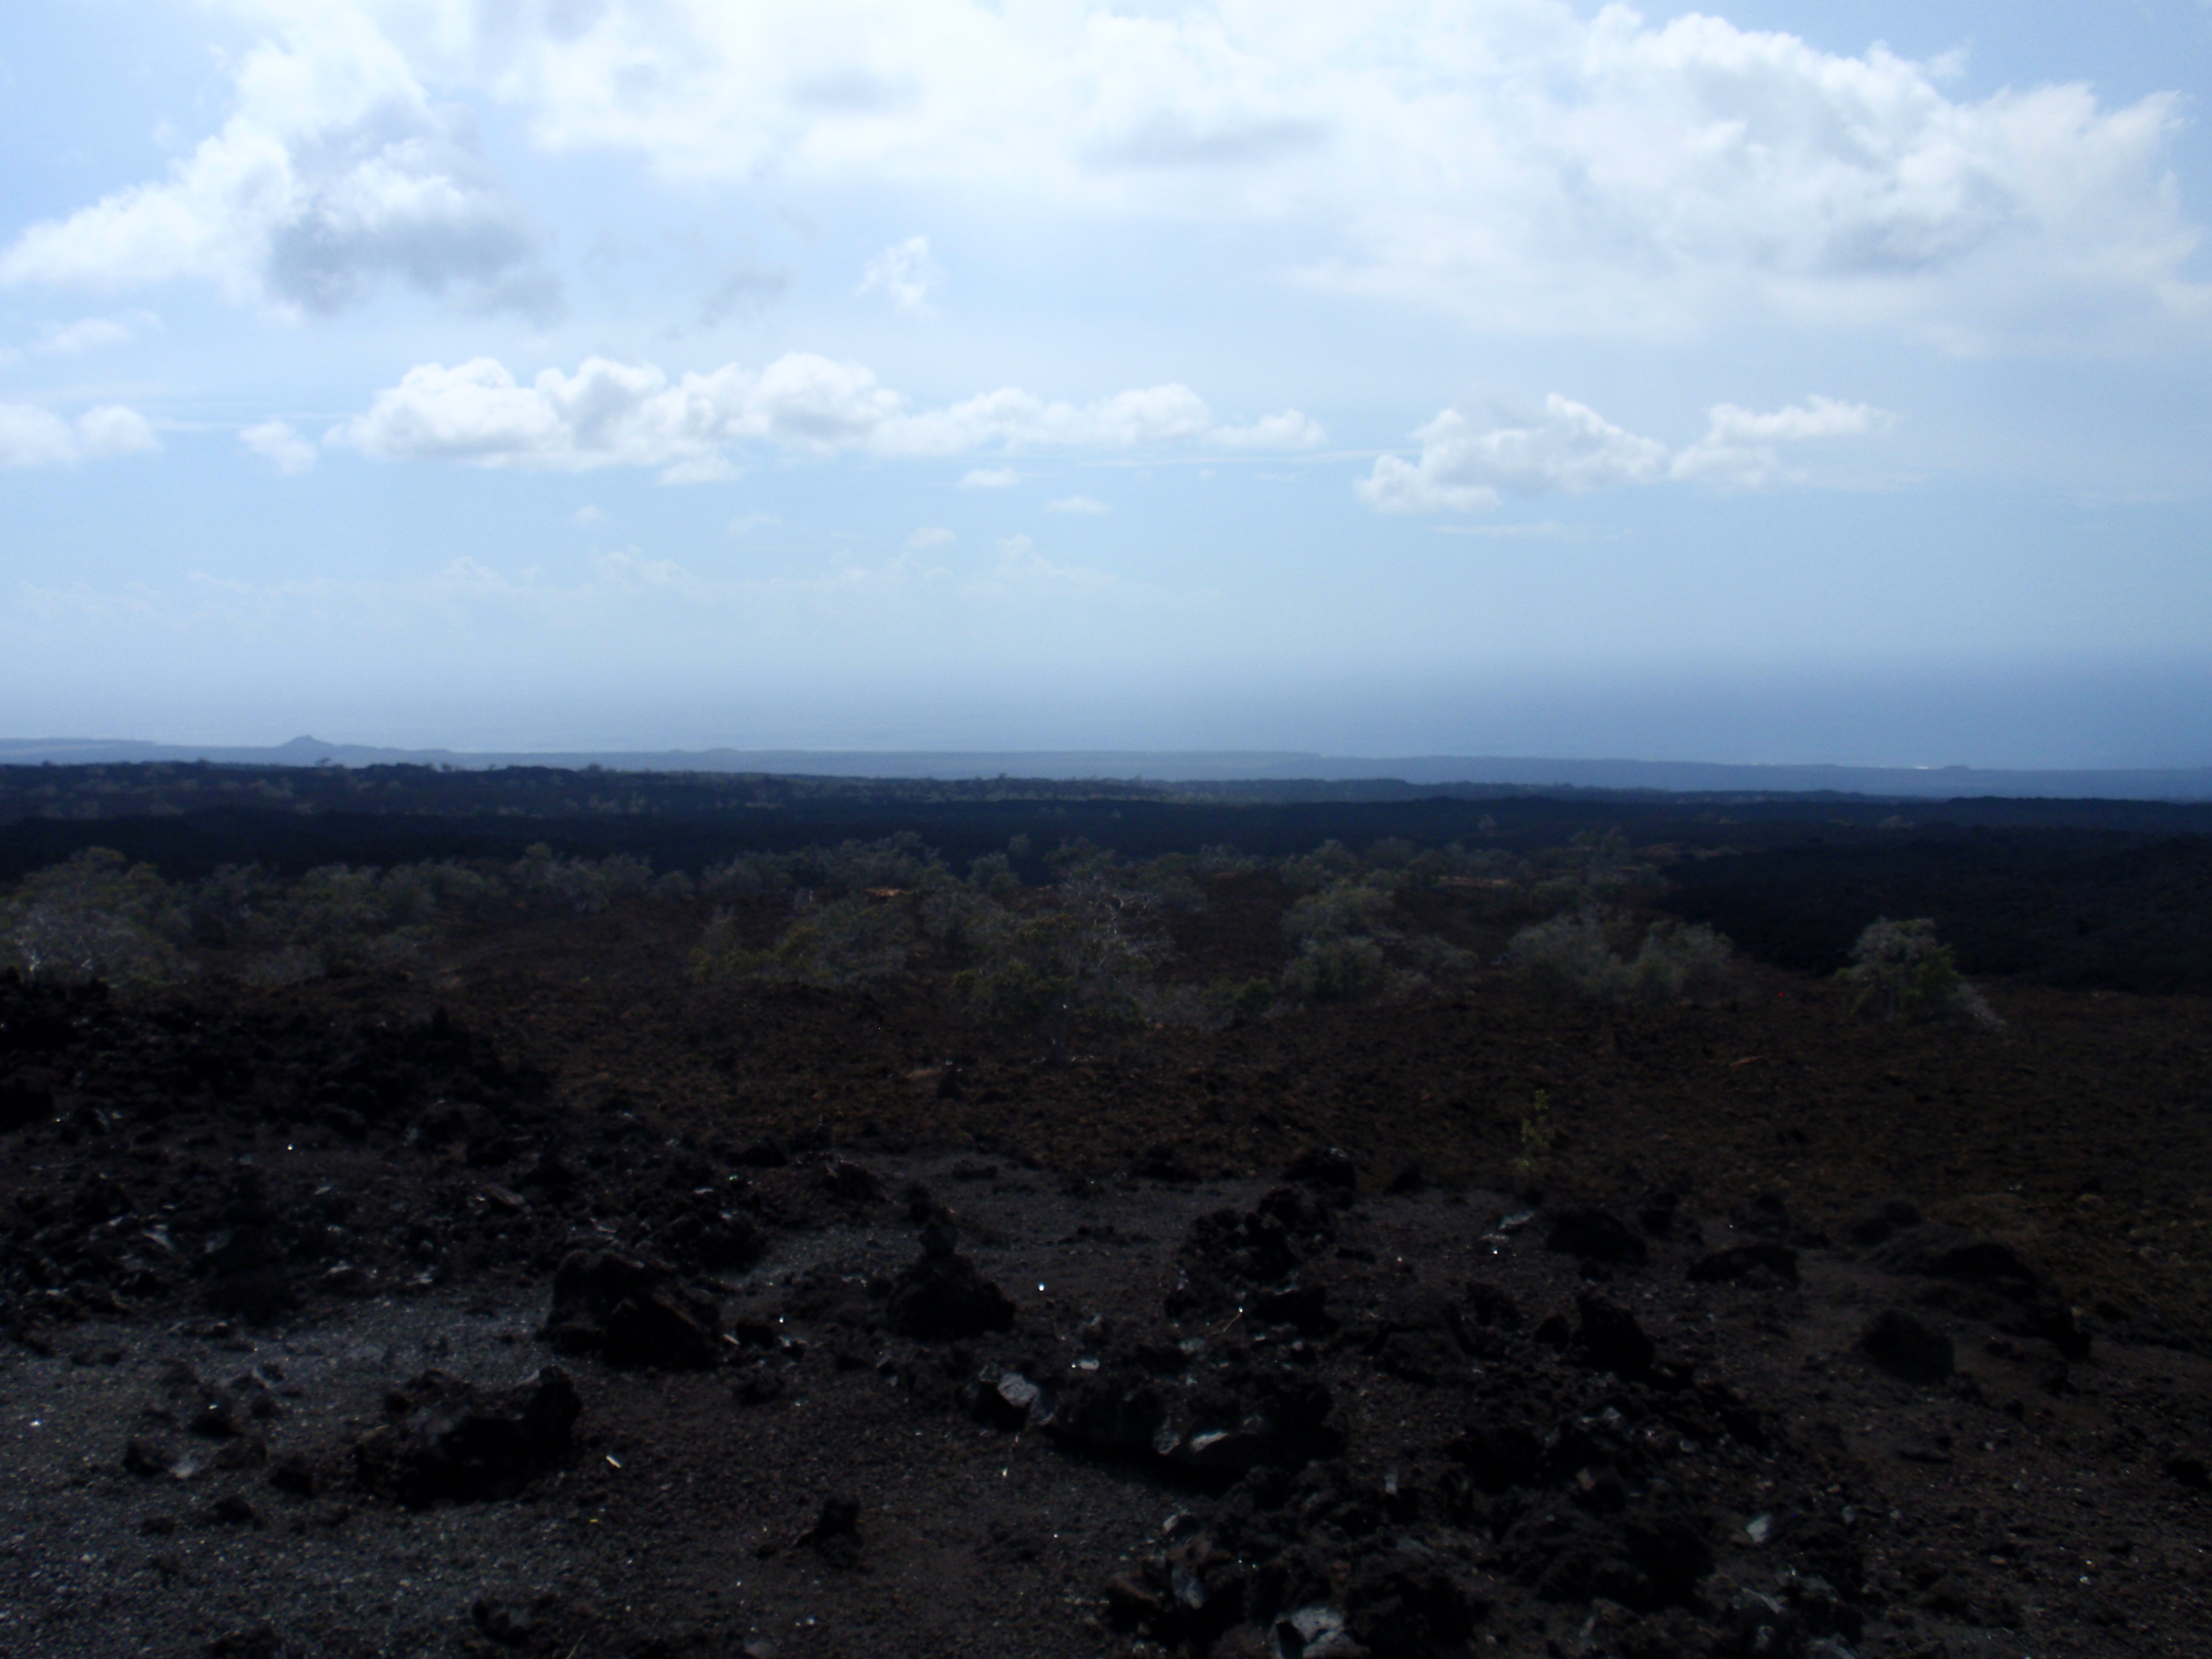 Barren shore near Kona